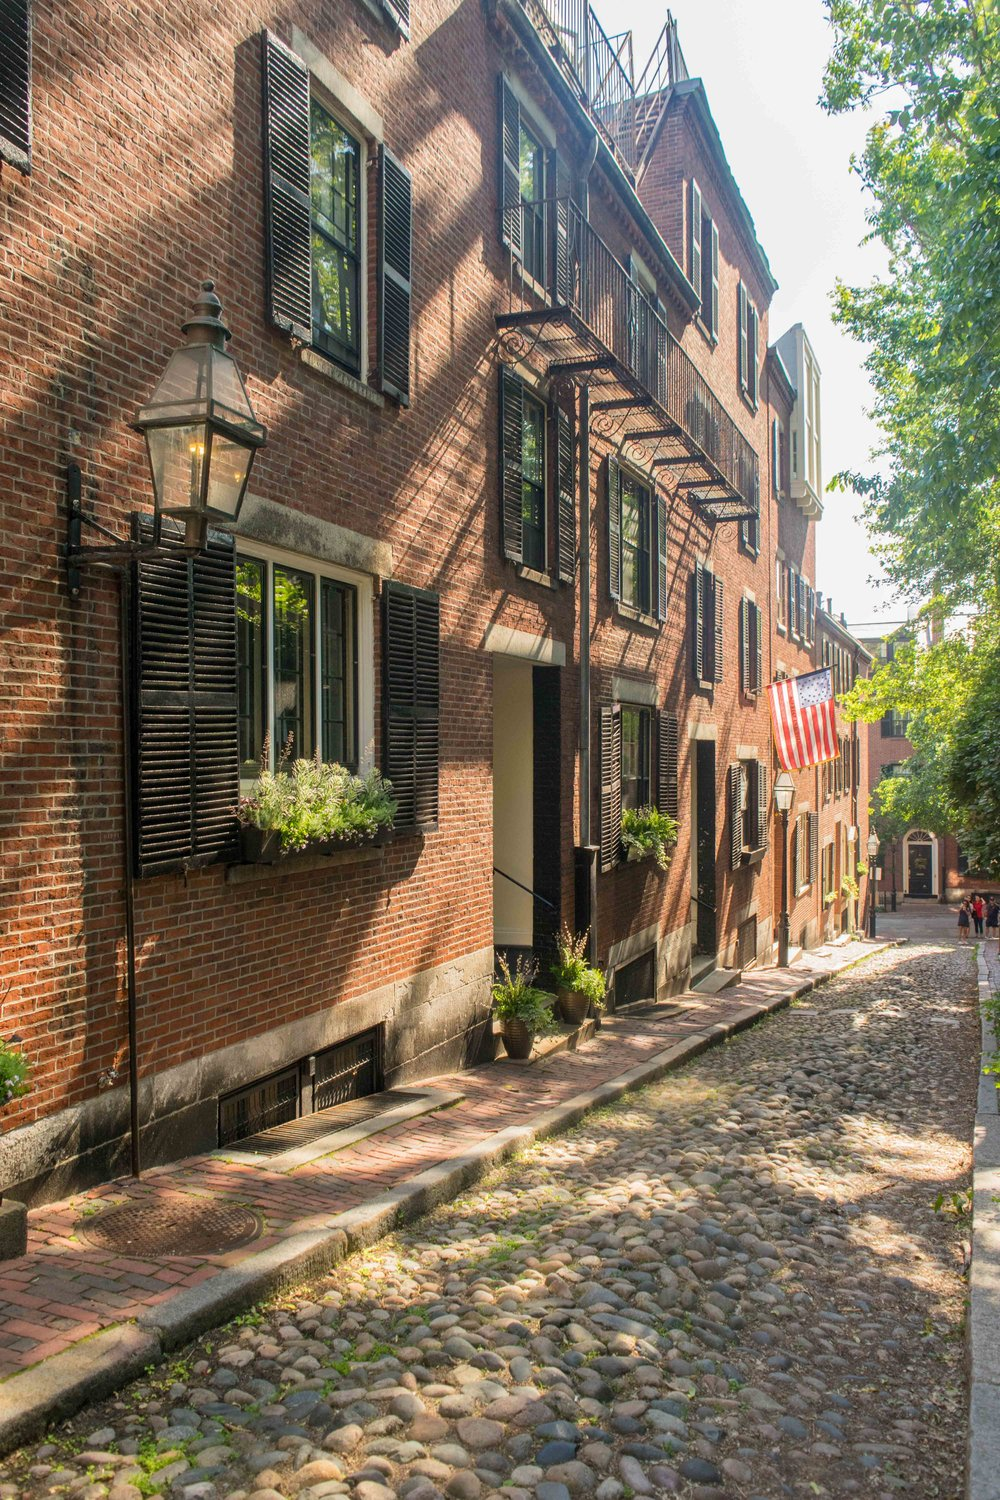 Acorn street (the most photographed street in America) is right around the corner from the XV Beacon